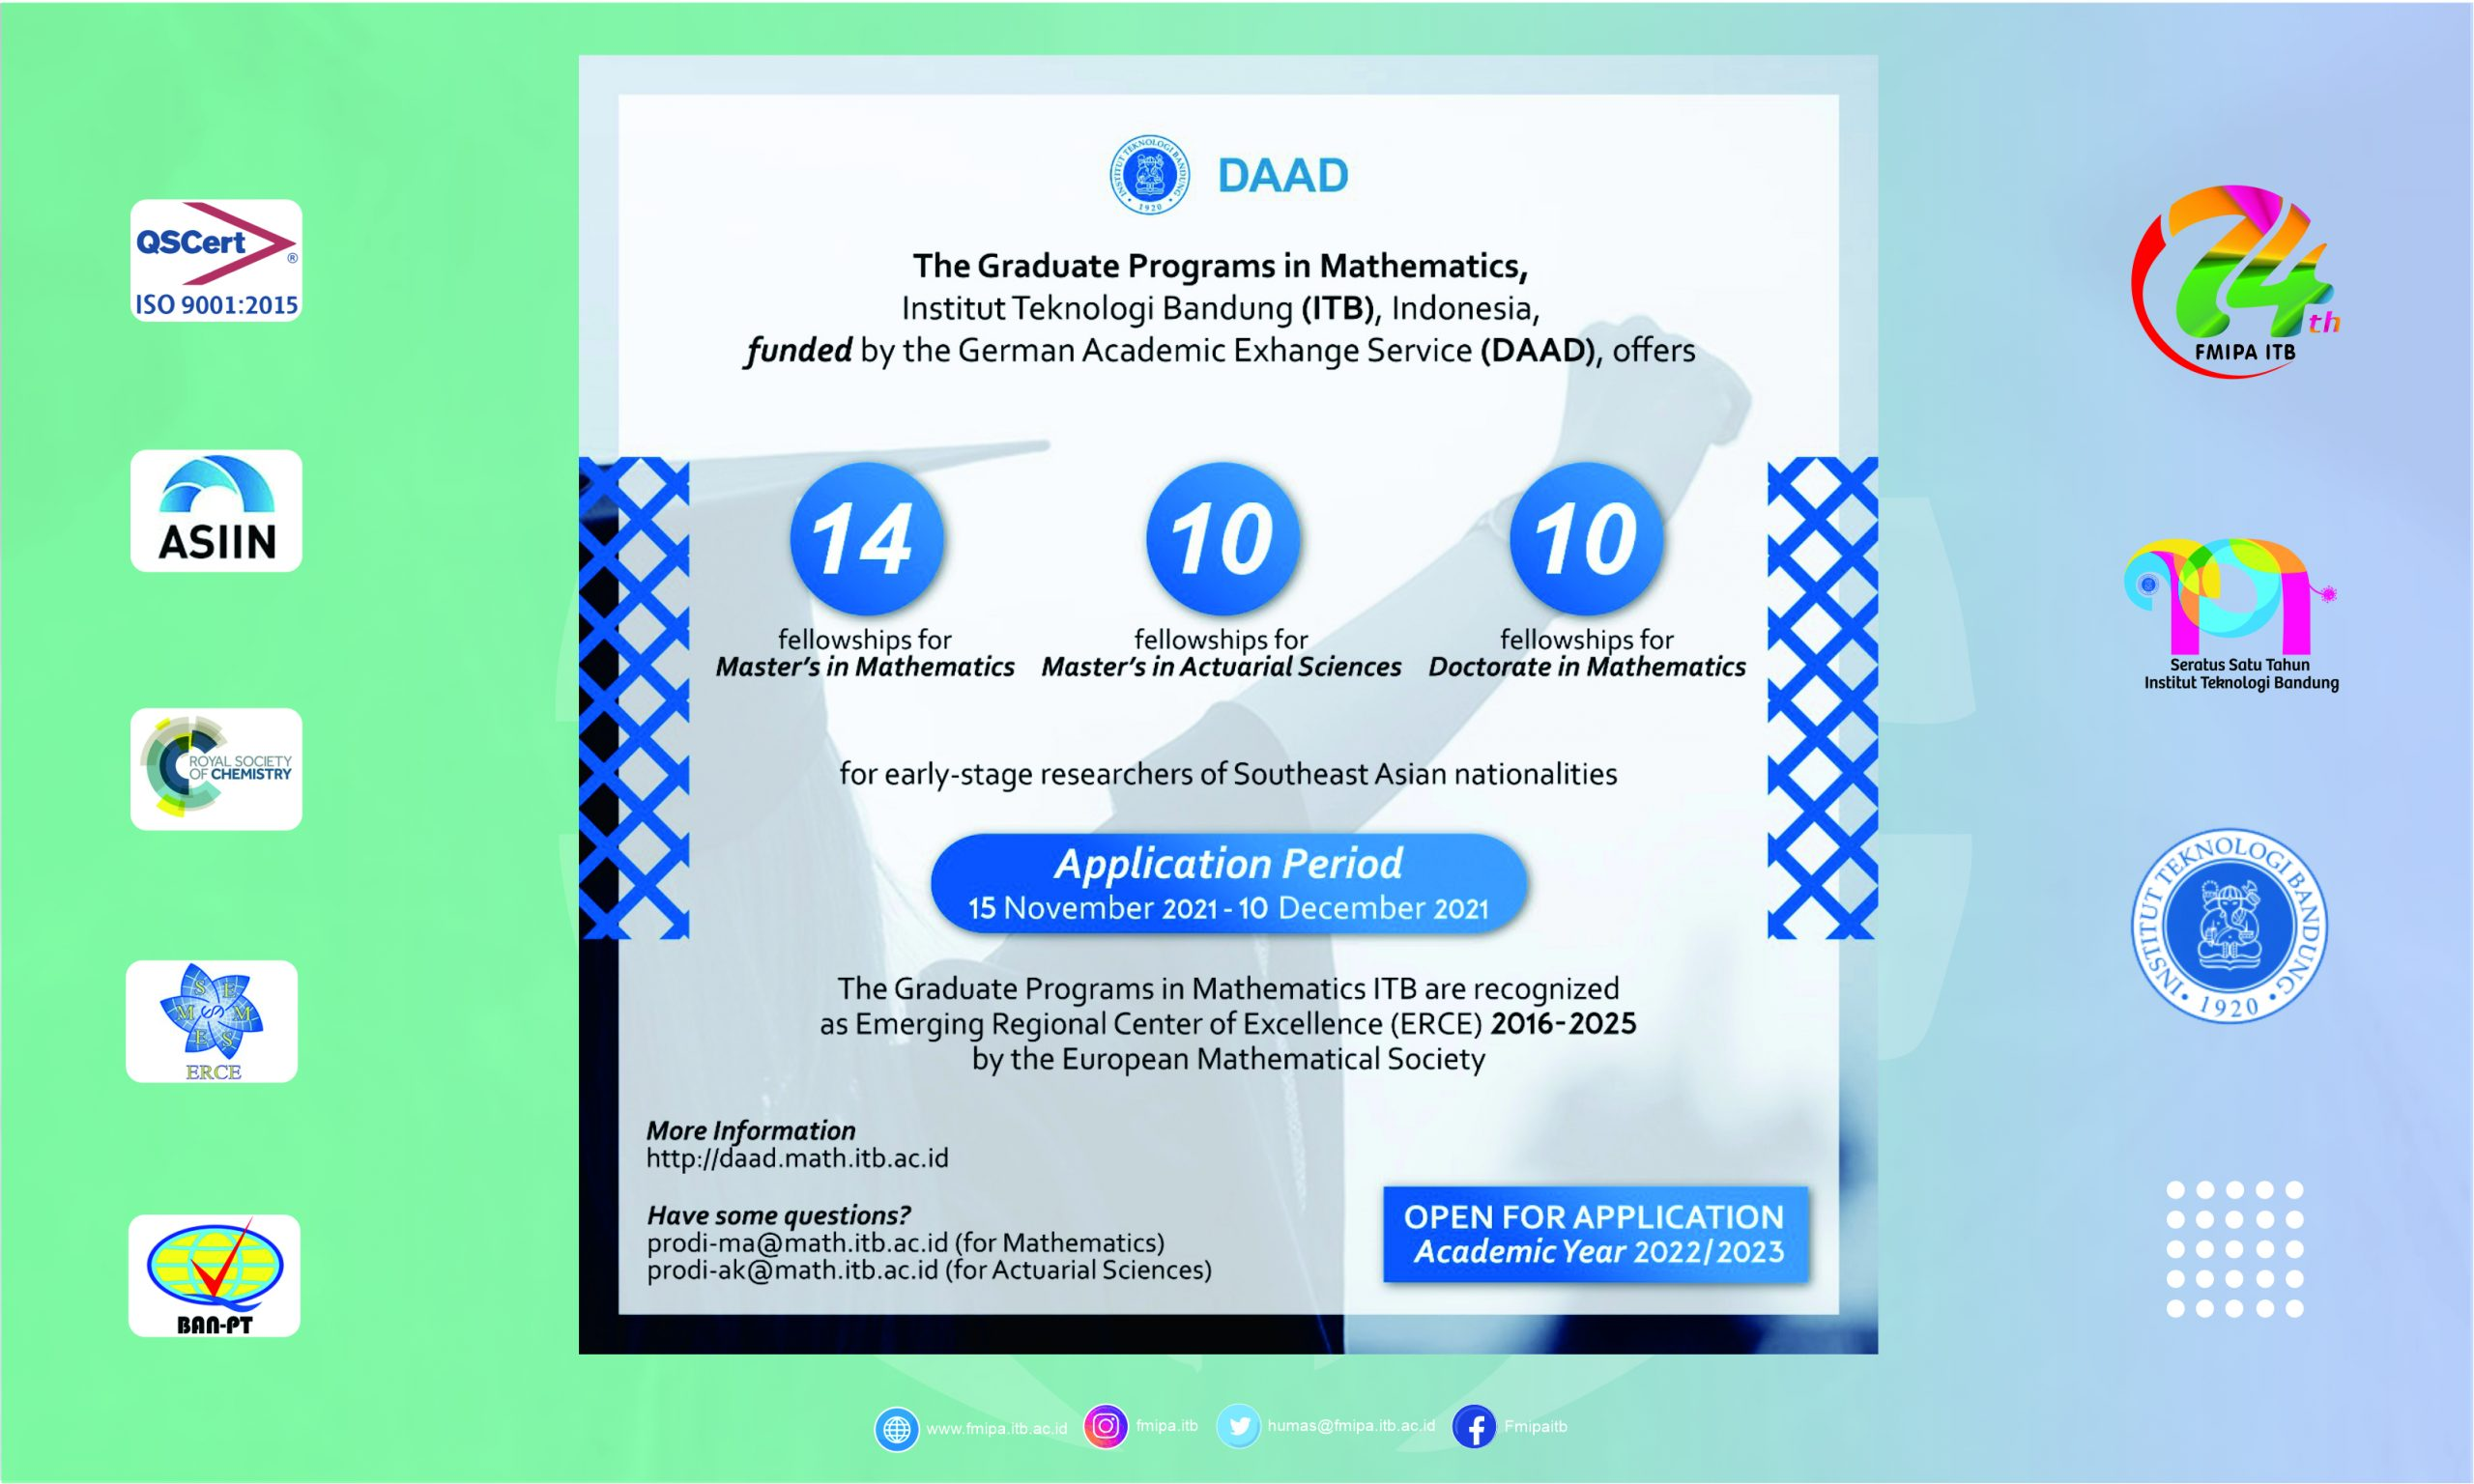 The Graduate Programs in Mathematics, Institut Teknologi Bandung (ITB), Indonesia, funded by the German Academic Exhange Service (DAAD)